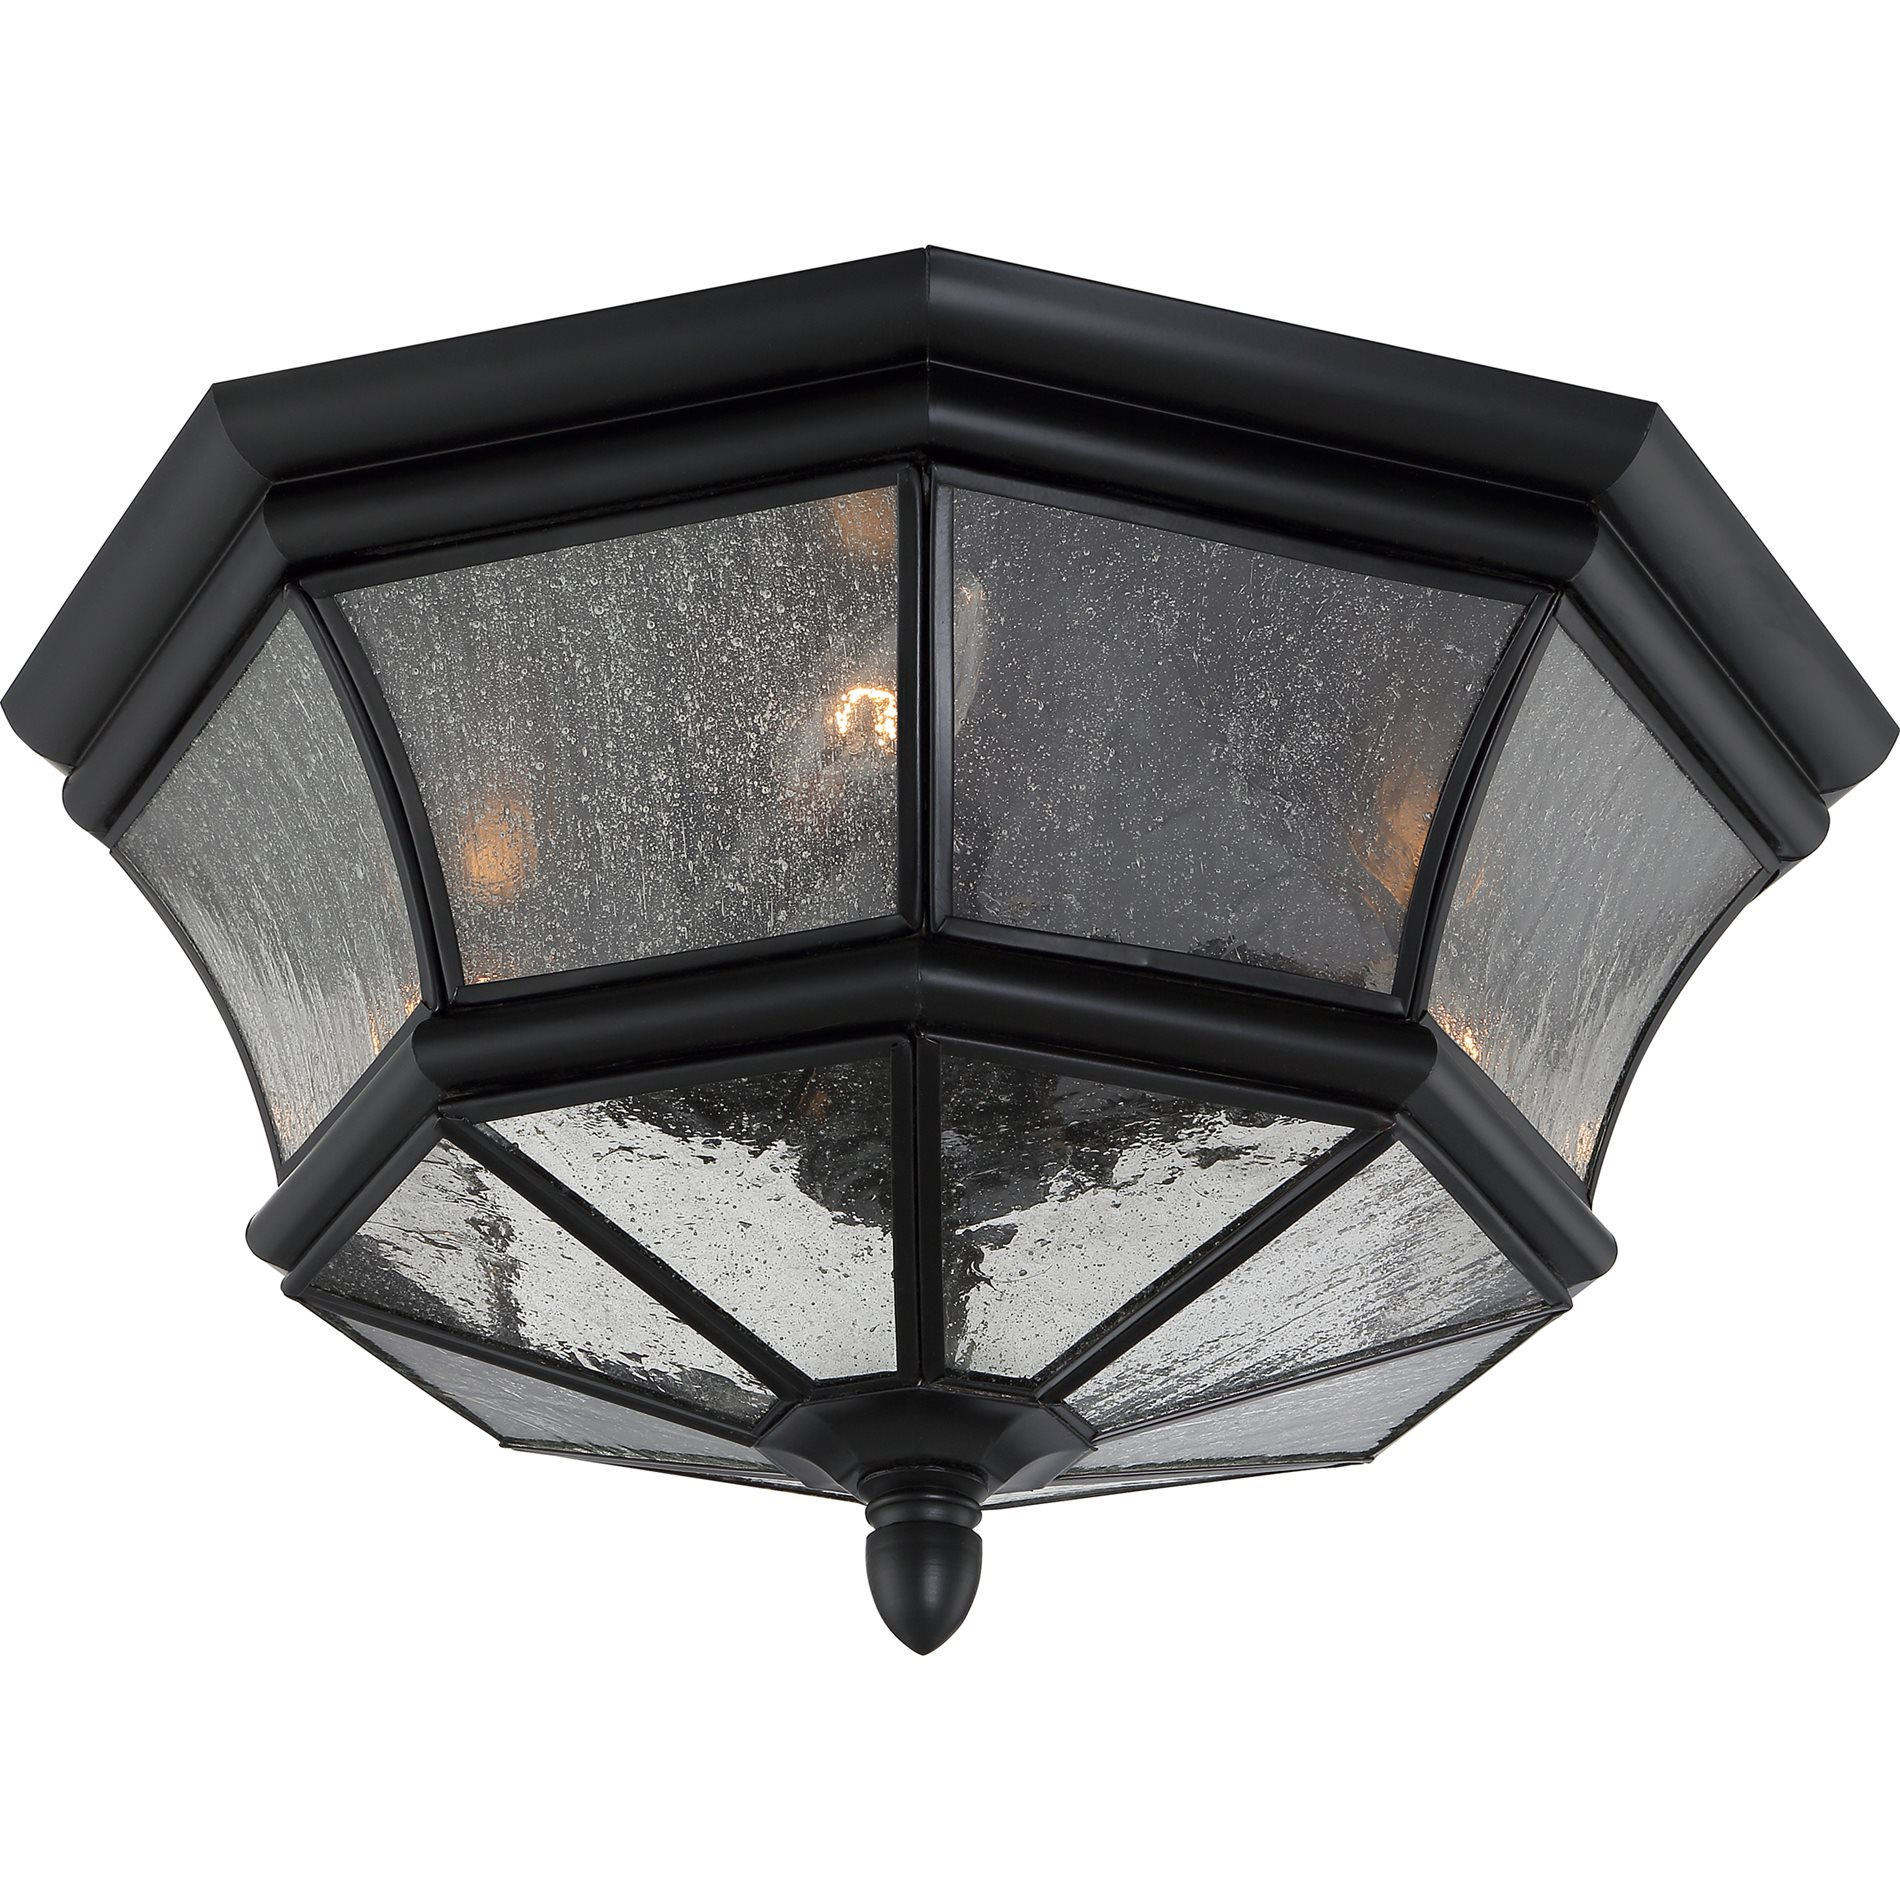 Quoizel Ny1615k Newbury Traditional Outdoor Flush Mount Ceiling Light Qz Ny1615k